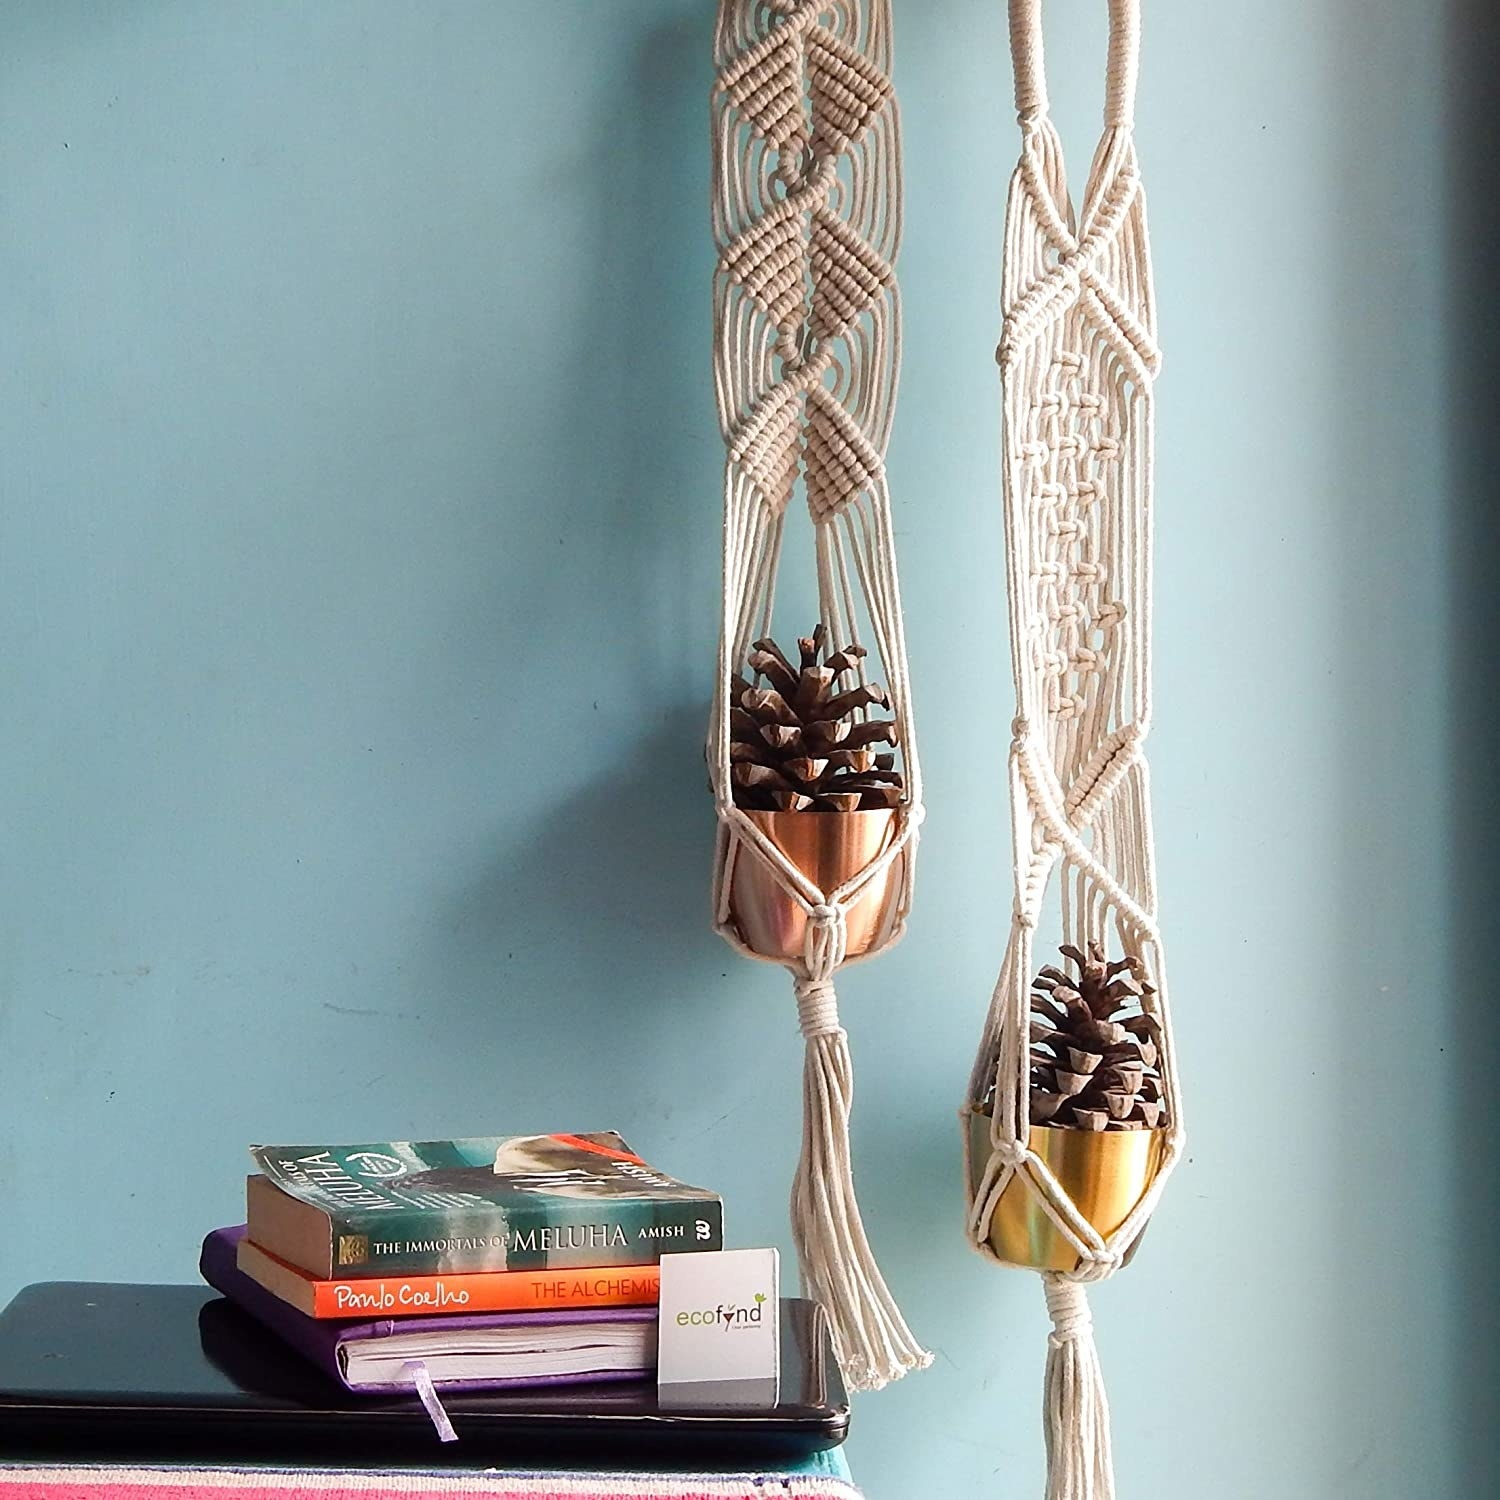 A pair of macrame plant hangers with metal pots placed in them.